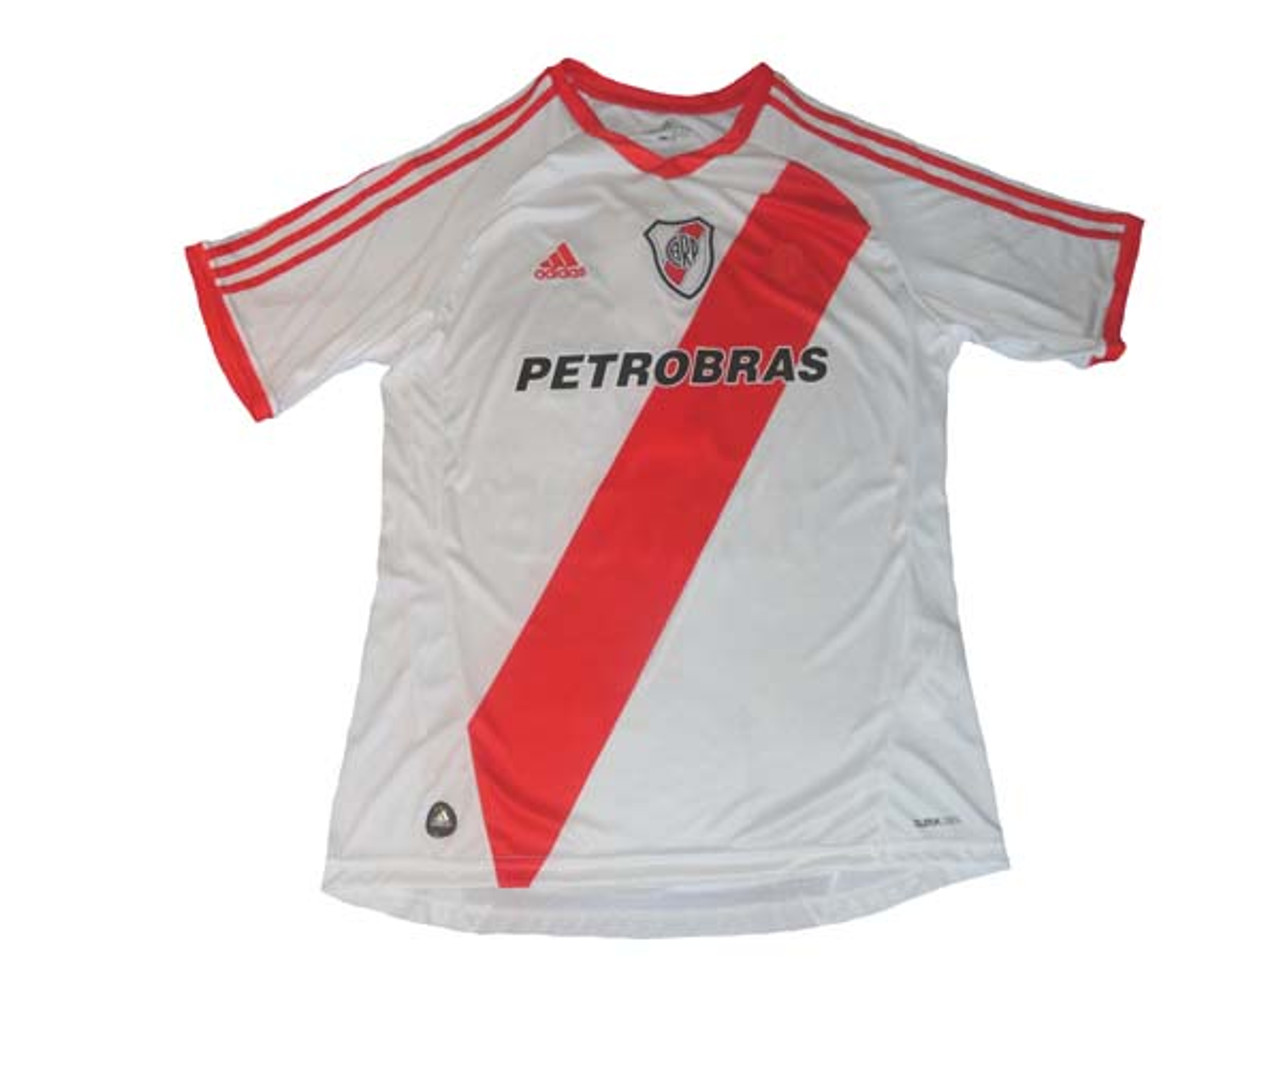 ADIDAS RIVER PLATE 2011 HOME JERSEY - Soccer Plus bfcb683a8